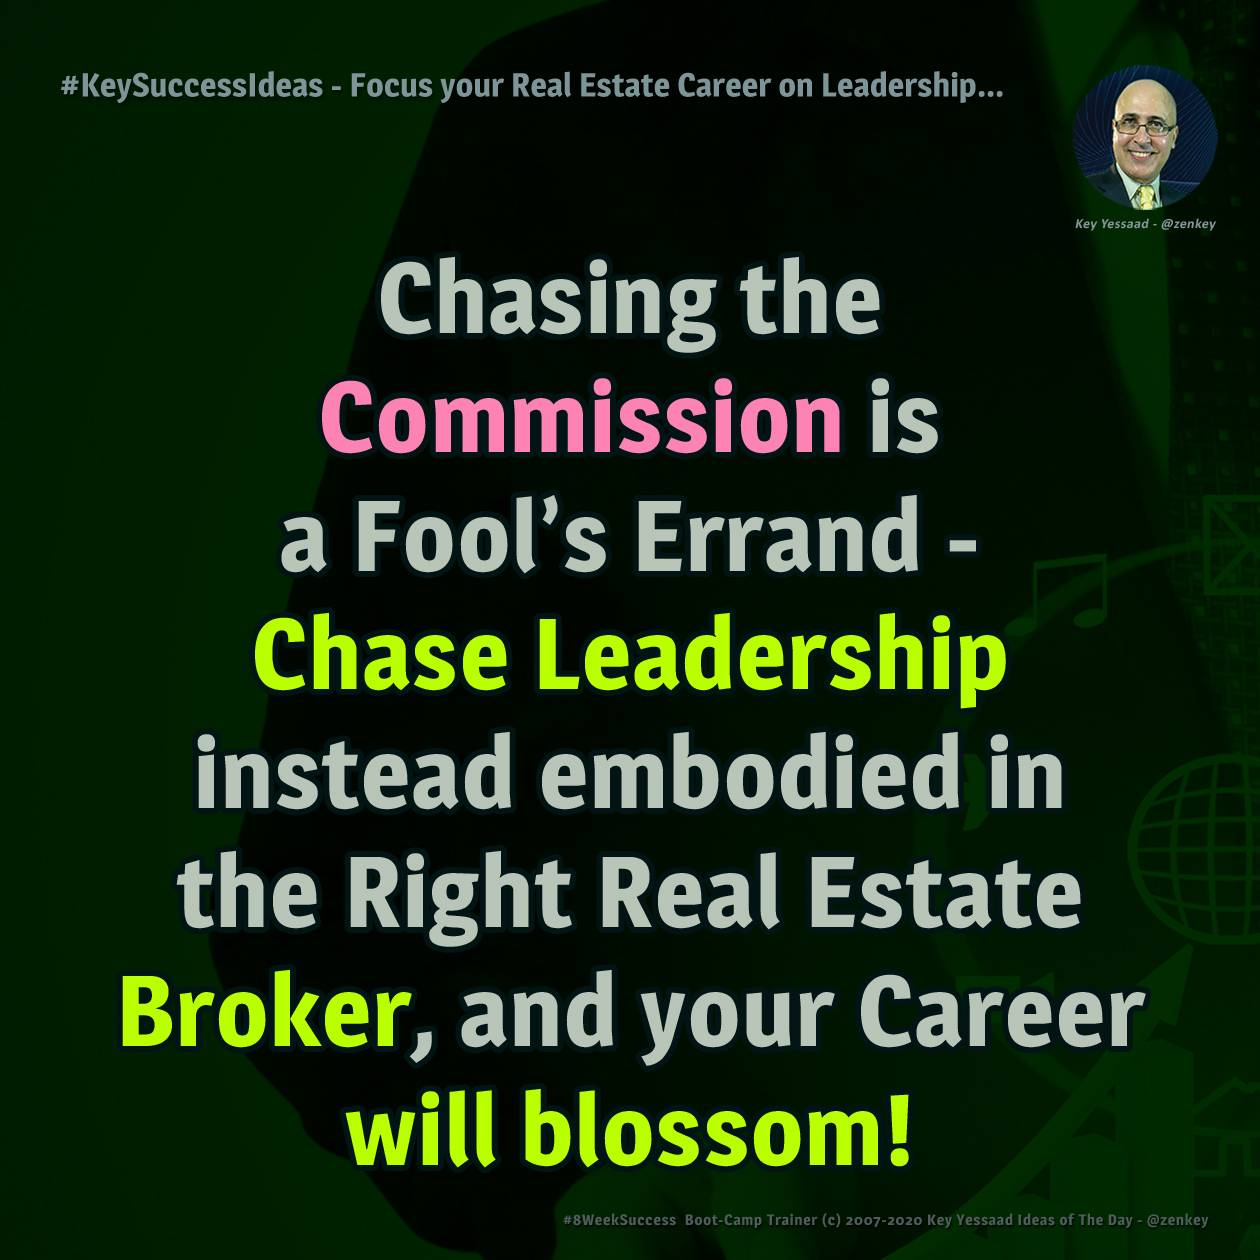 #KeySuccessIdeas - Focus your Real Estate Career on Leadership...